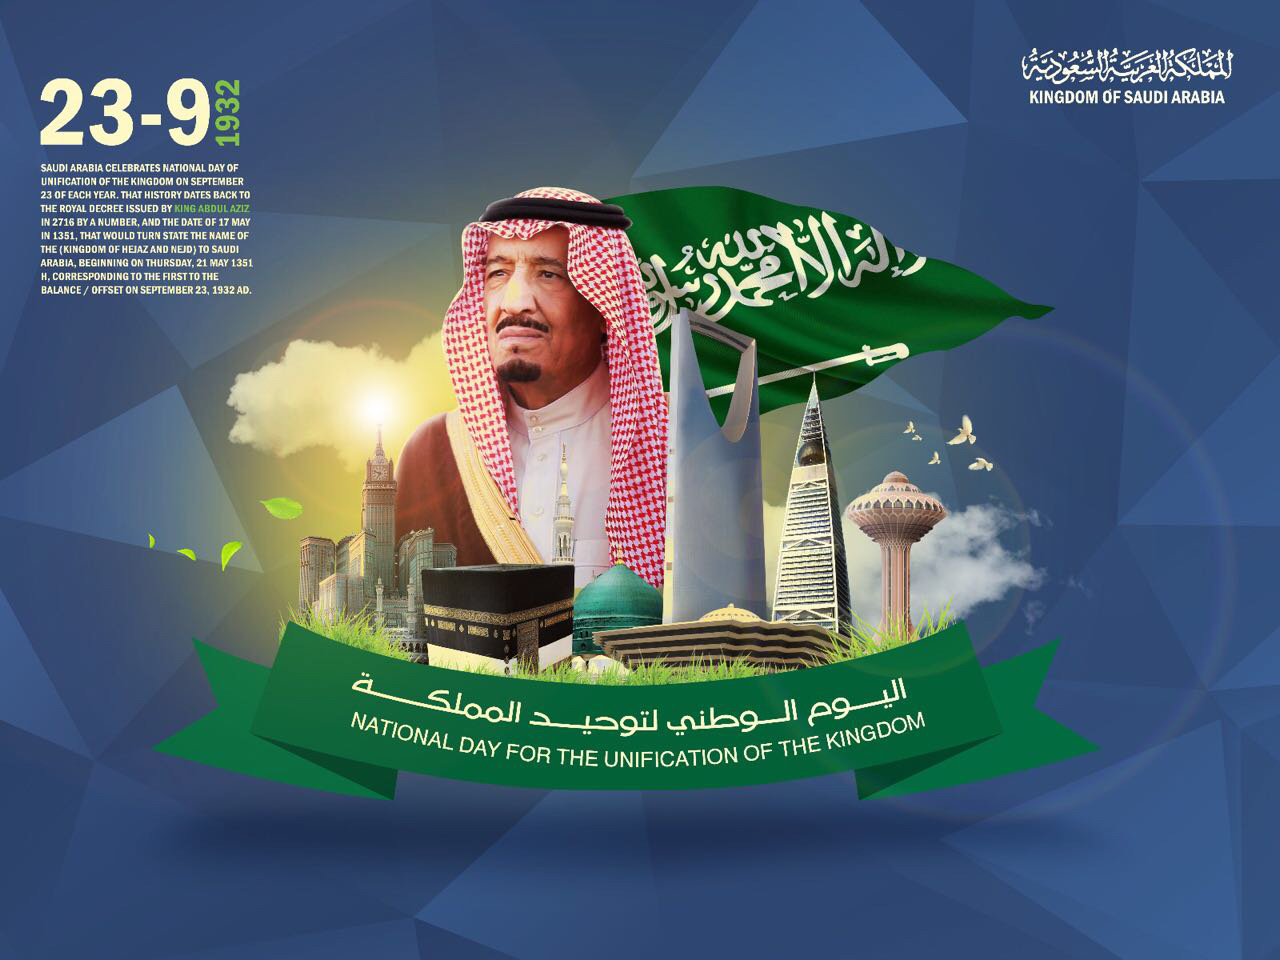 tourism in the kingdom of saudi arabia Tourism to saudi arabia is set to receive a massive boost from next month as the country unveils plans to issue mass tourism visas the 30-day entry visas will be available to citizens of all.